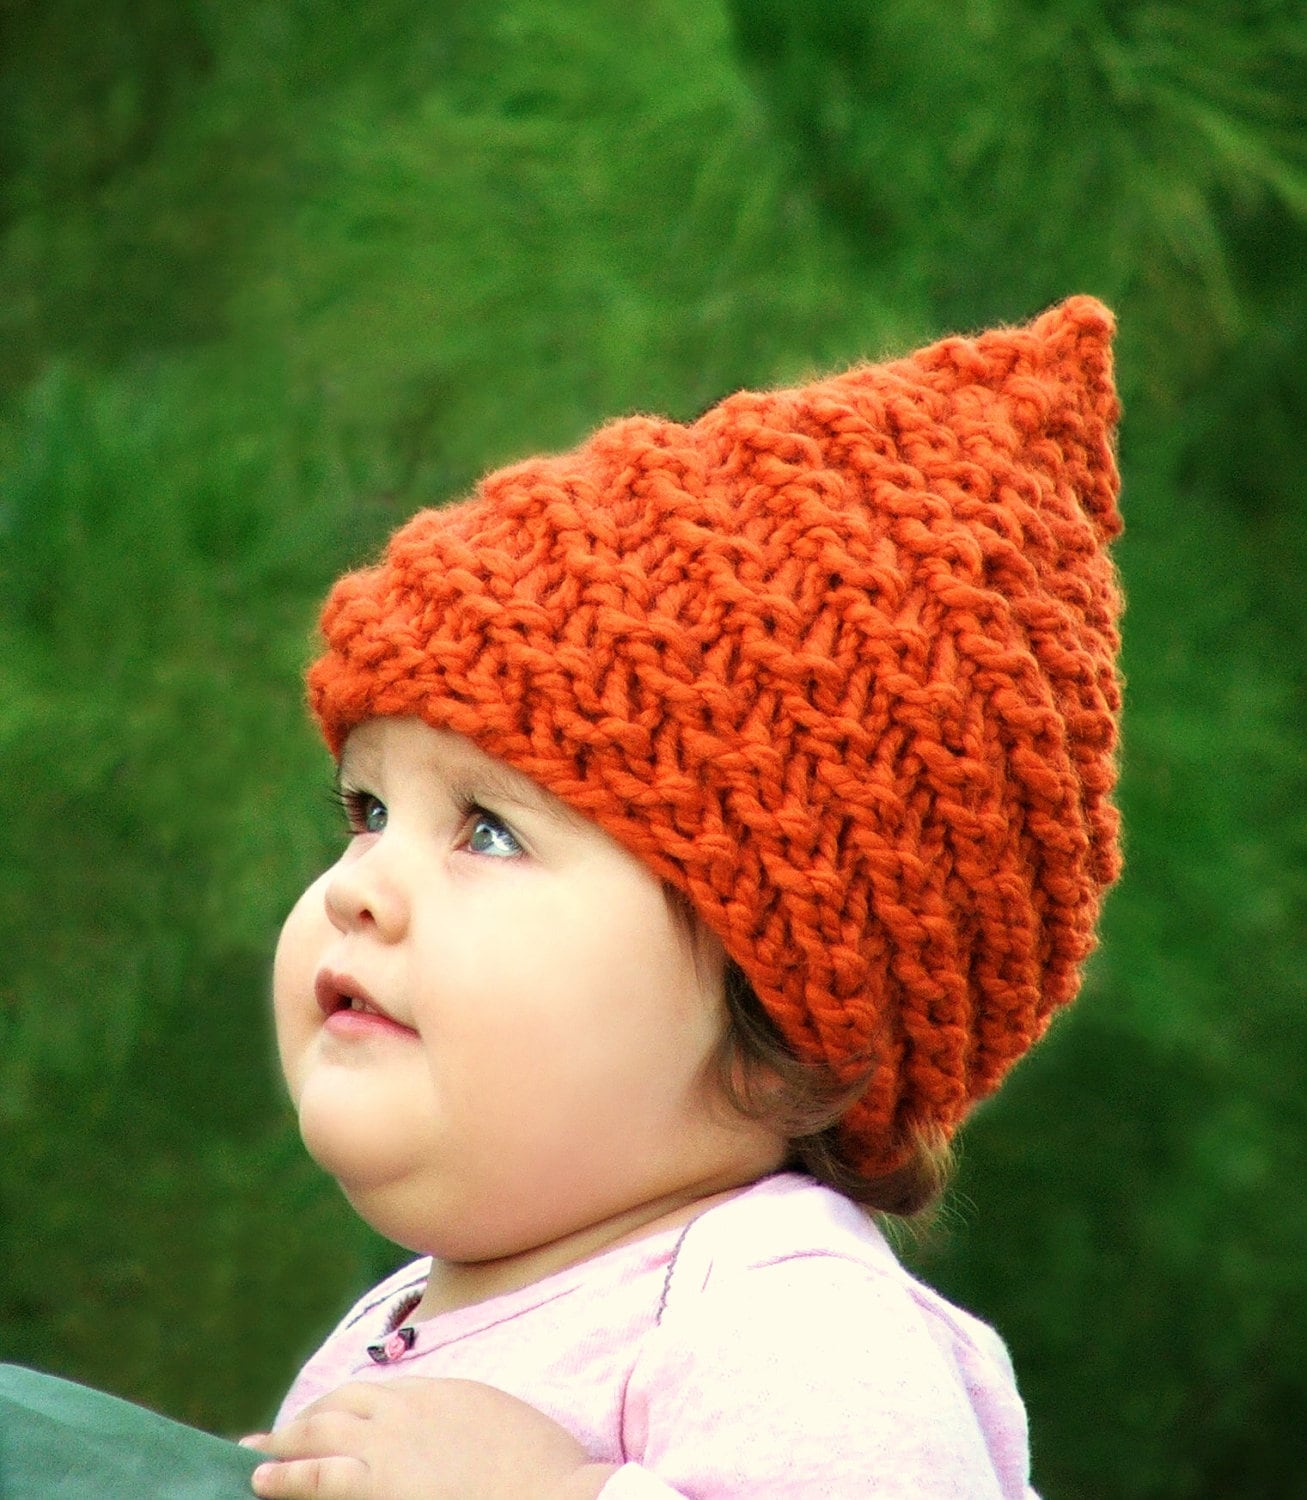 Knitting Patterns For Baby Elf Hats : Items similar to Infant Elf Hat Baby Gnome Hat Newborn Beanie Hand Knit Baby ...